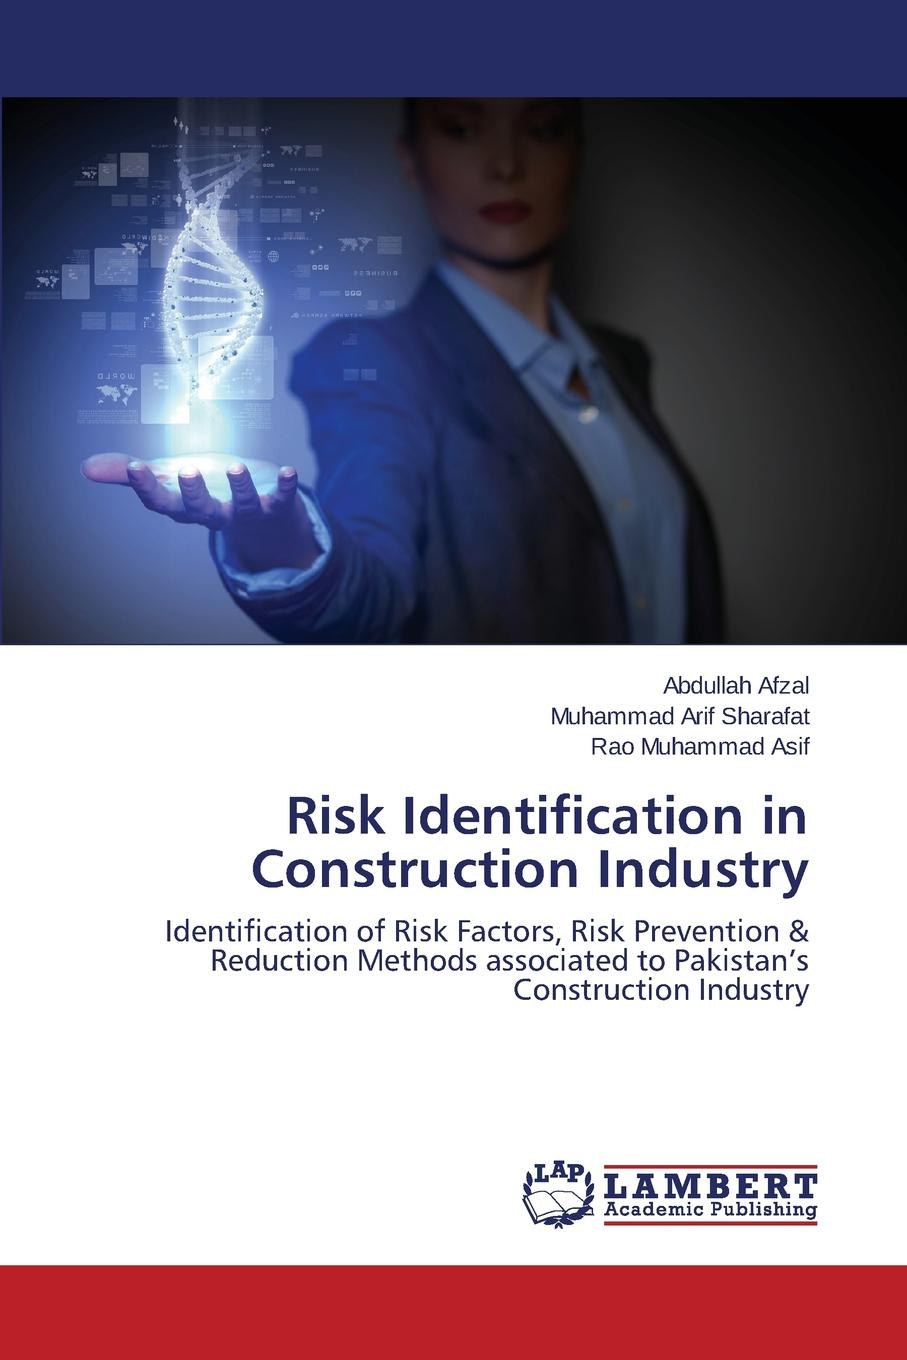 Afzal Abdullah, Sharafat Muhammad Arif, Asif Rao Muhammad Risk Identification in Construction Industry the cost of contracting out